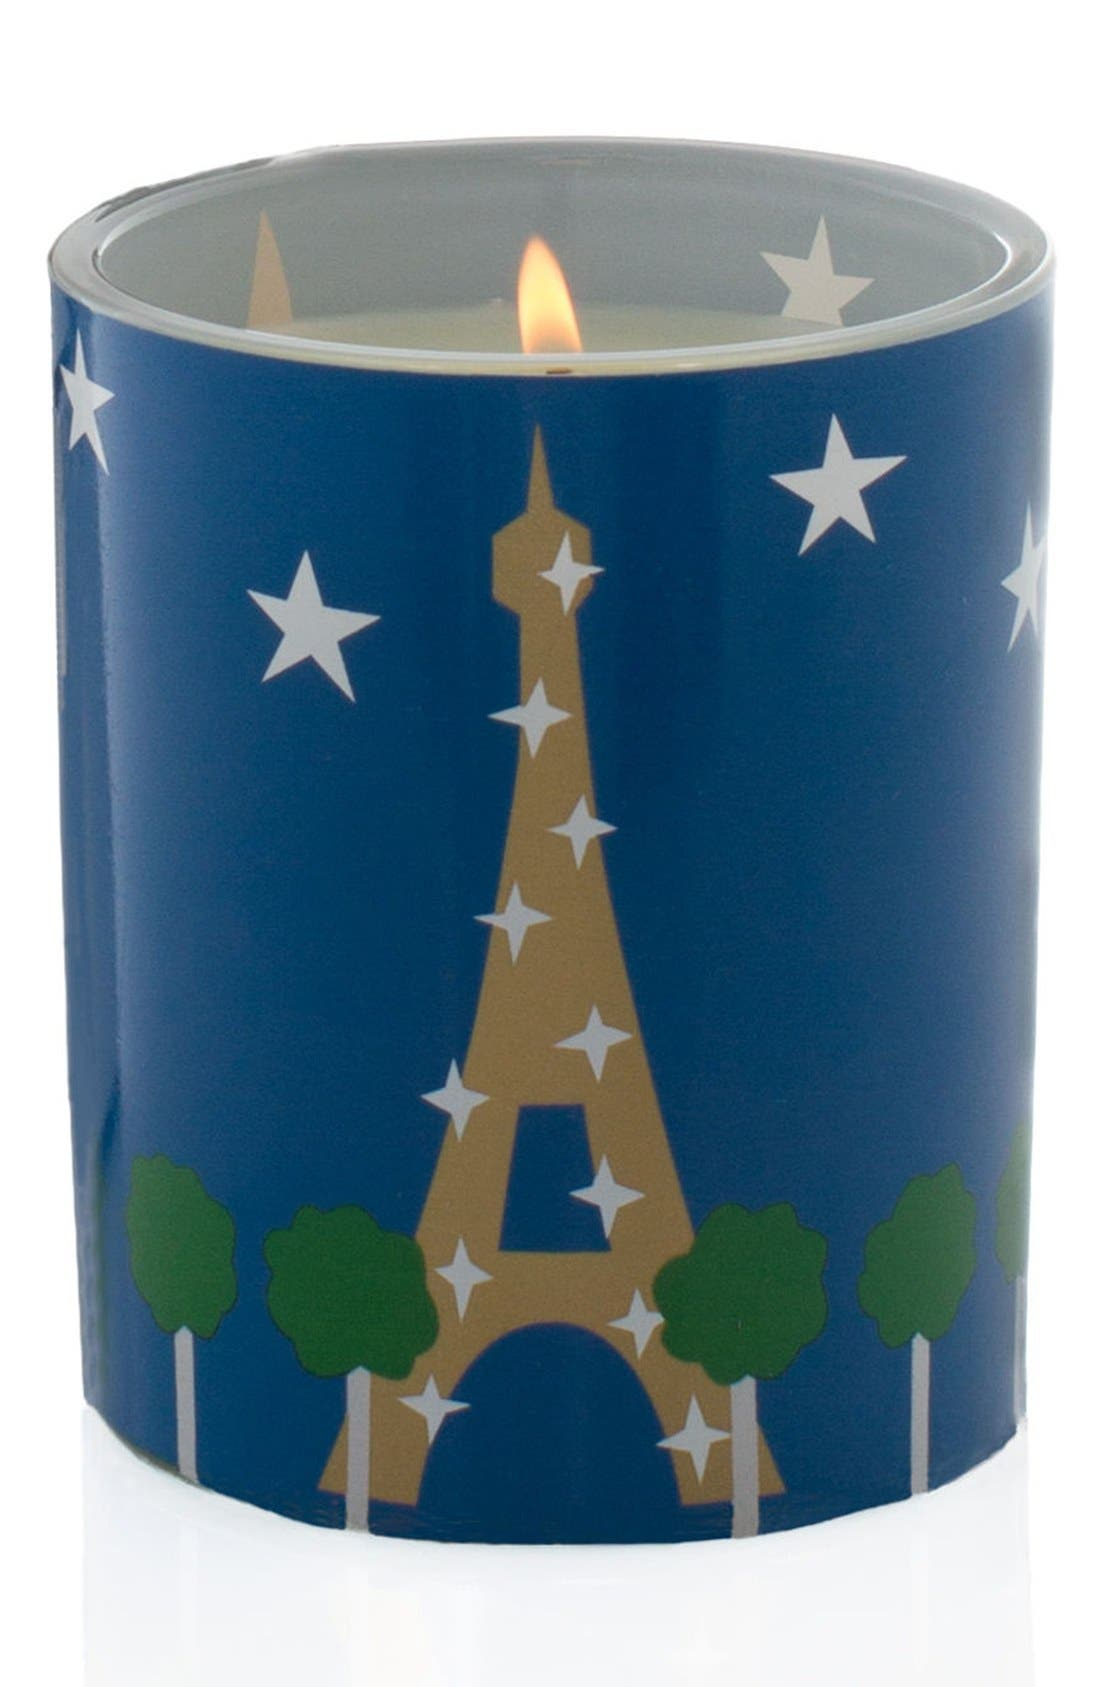 R. Nichols 'Paris' Scented Candle